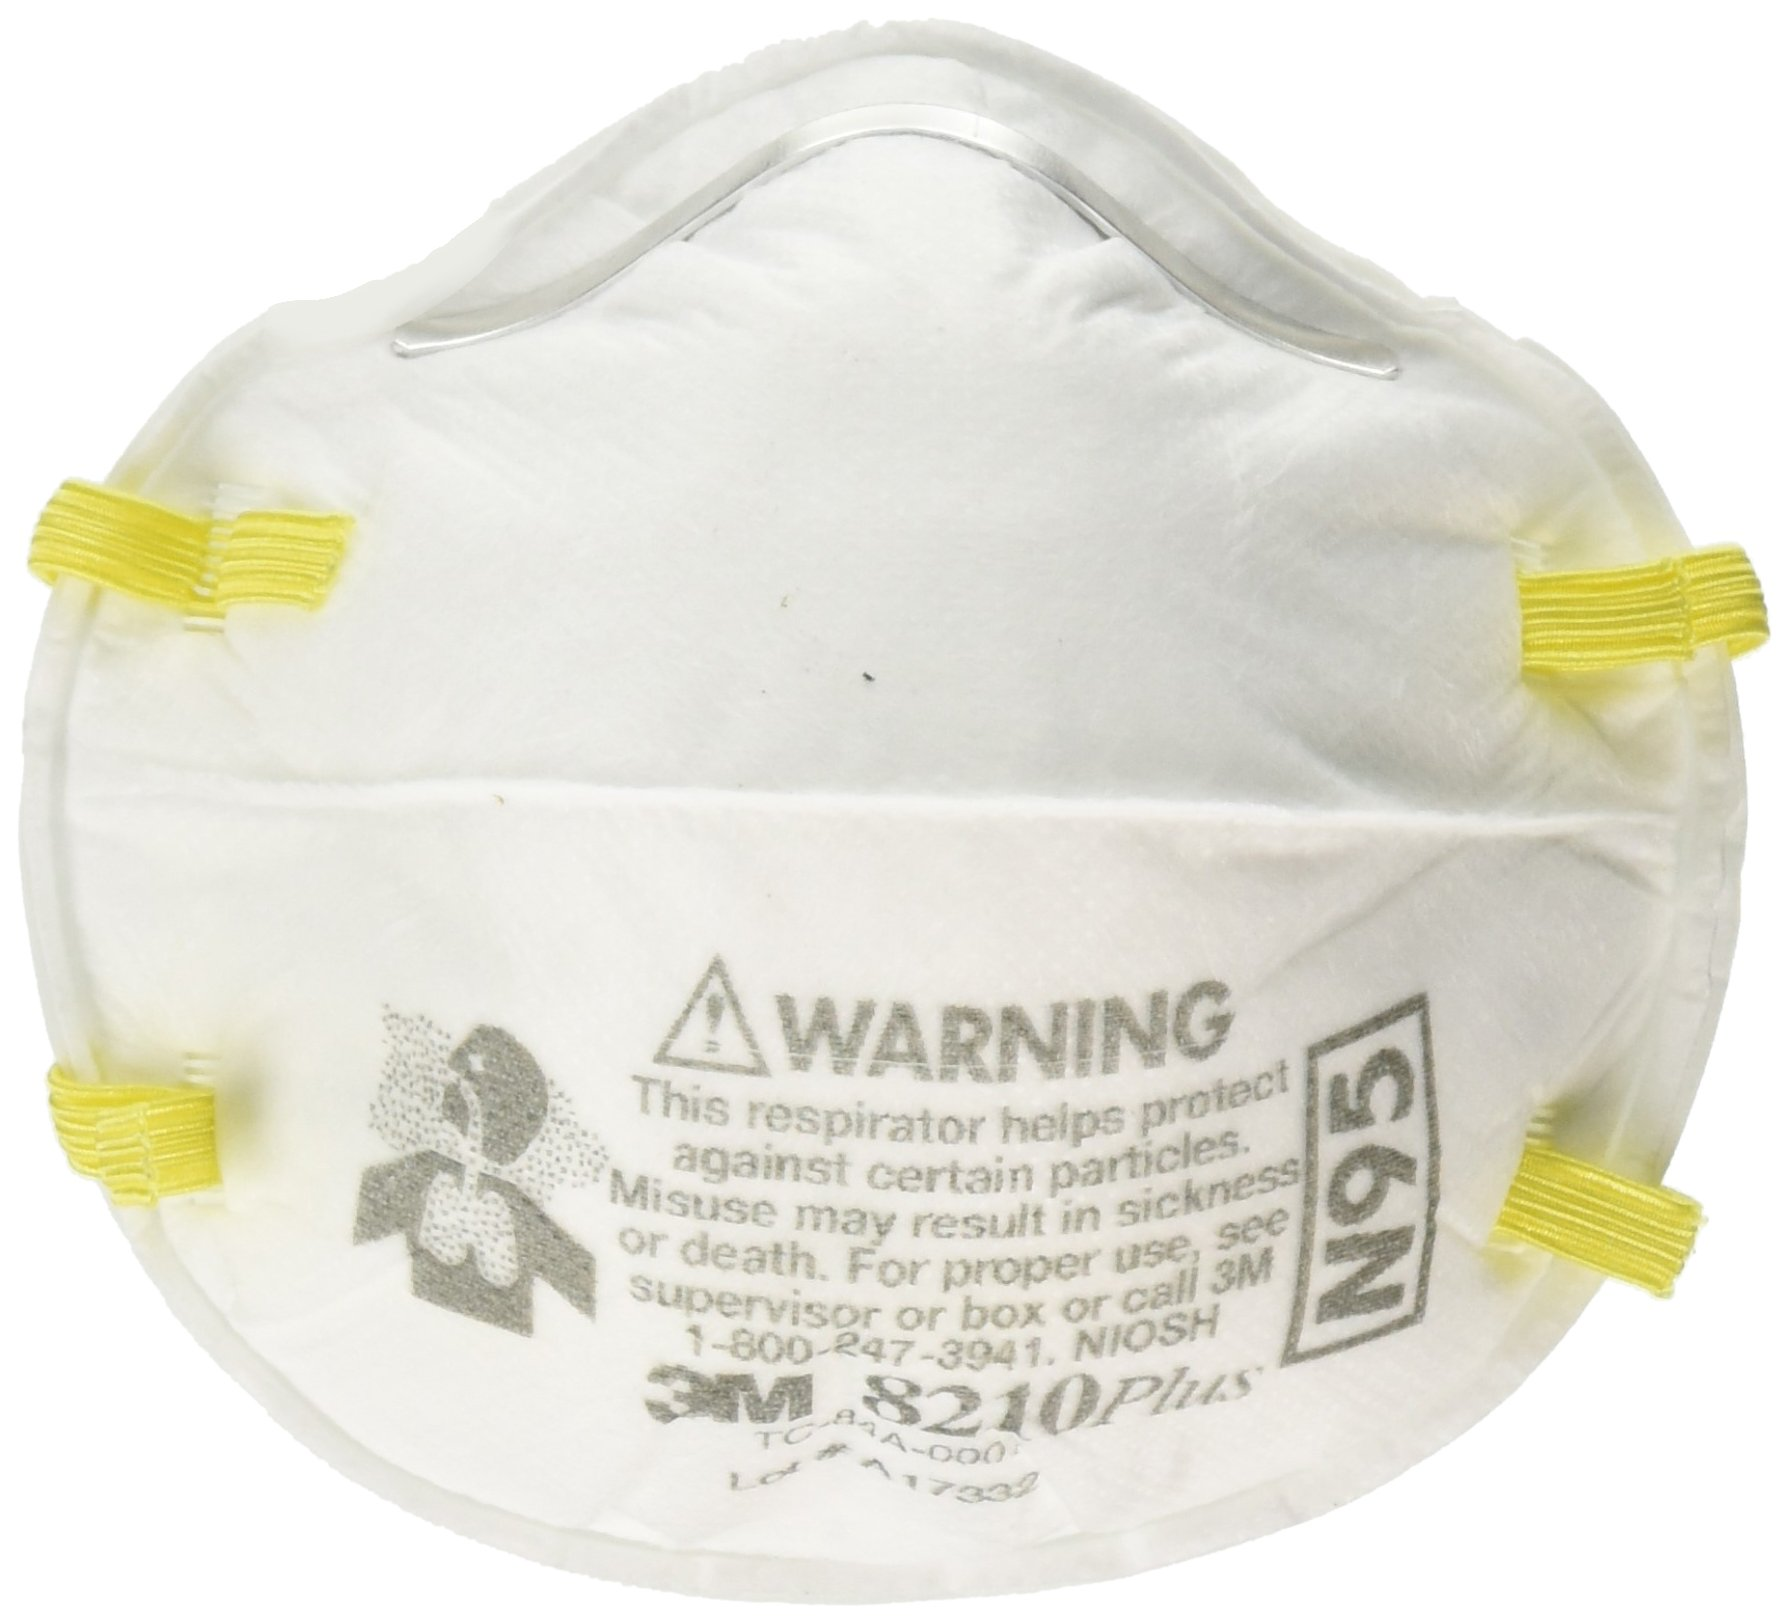 3M Safety 142-8210PLUS N95 8210Plus Particulate Respirator (Box of 20) by 3M Safety